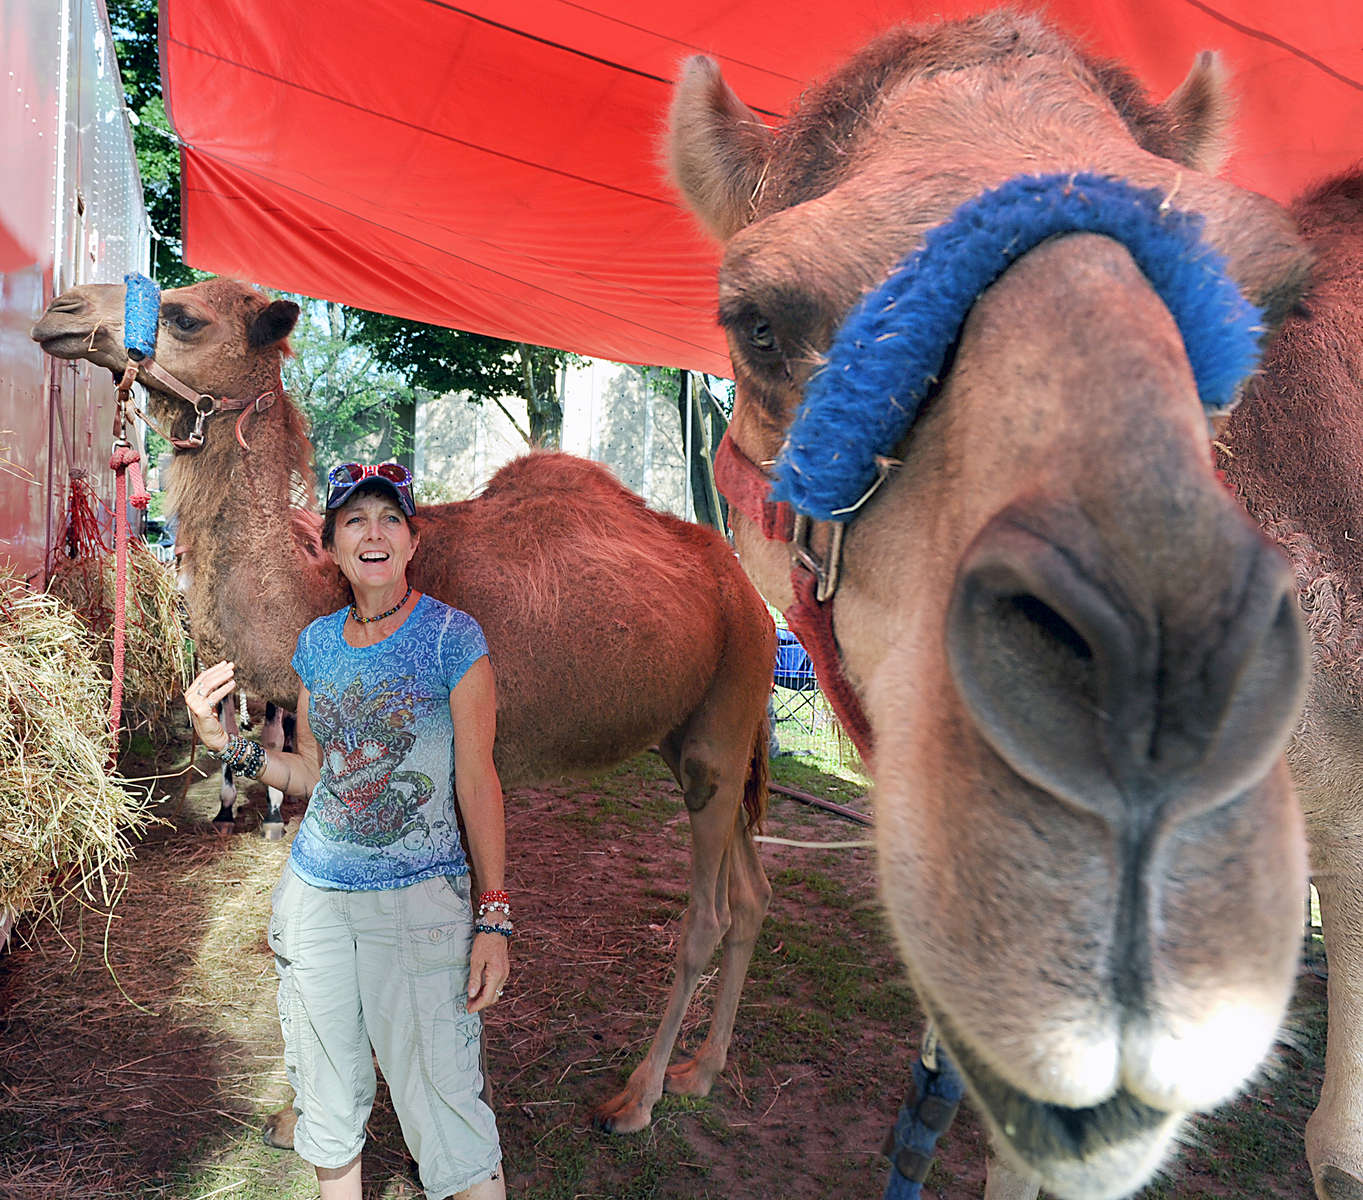 7/3/17-- FRAMINGHAM-- Framinham native Carolyn (Convery) Rice, with dromedary camels Khan, right, and Sulimon, has been with he circus for 30 years. The Kelly Miller Circus is performing in the St. Stephen Parish School parking lot with shows Monday at 4:30 p.m. and 7:30 p.m. and Tuesday at 3 p.m. [Daily News and Wicked Local Staff Photo/Art Illman]